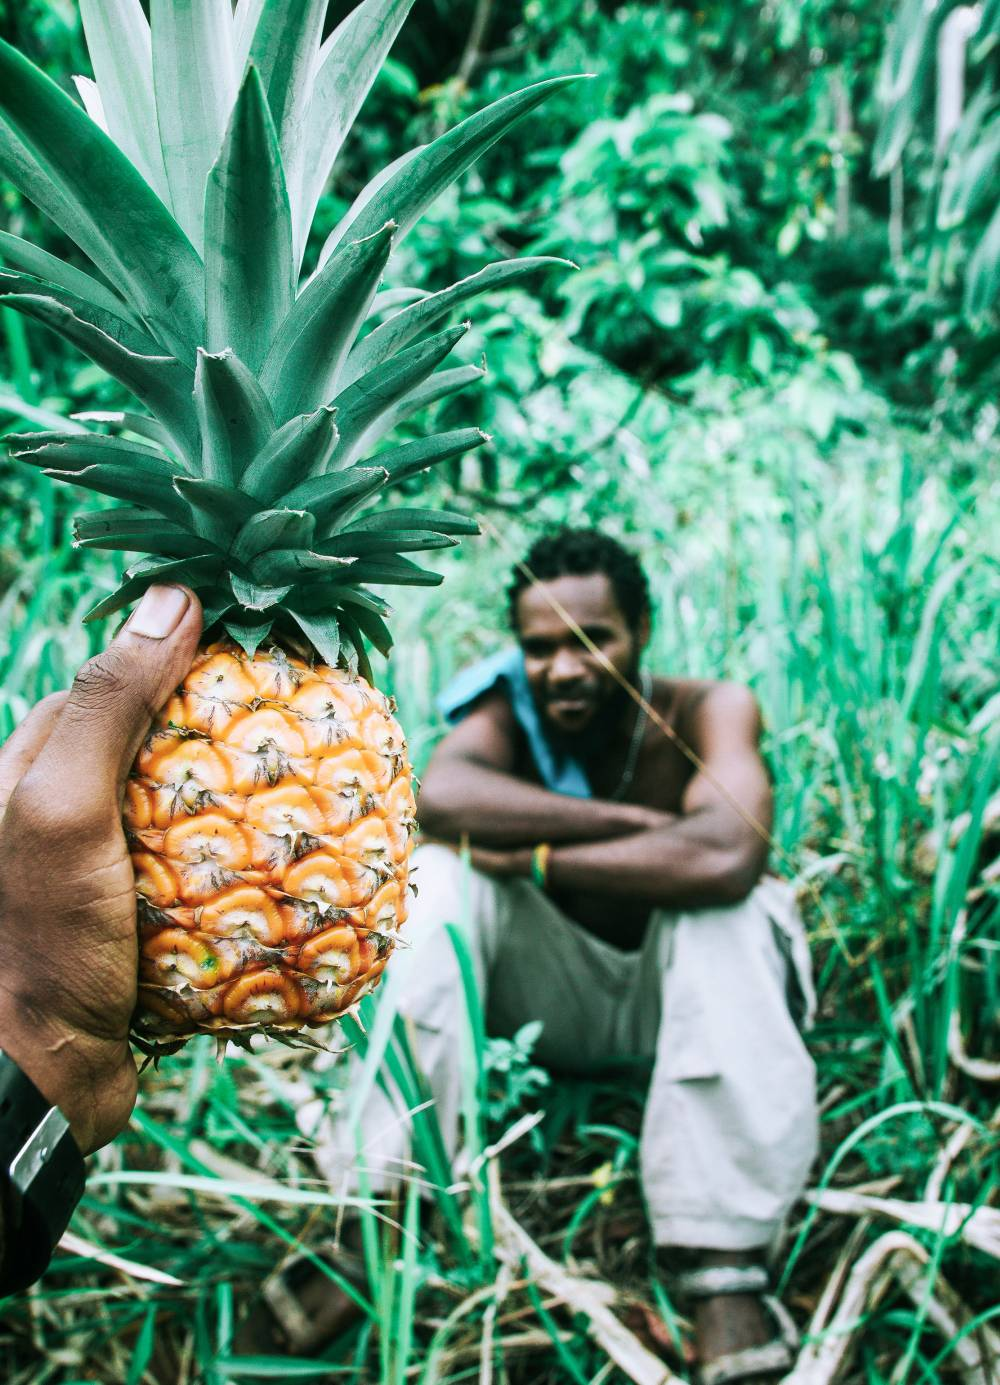 pinatex pineapple leather sustainable farming